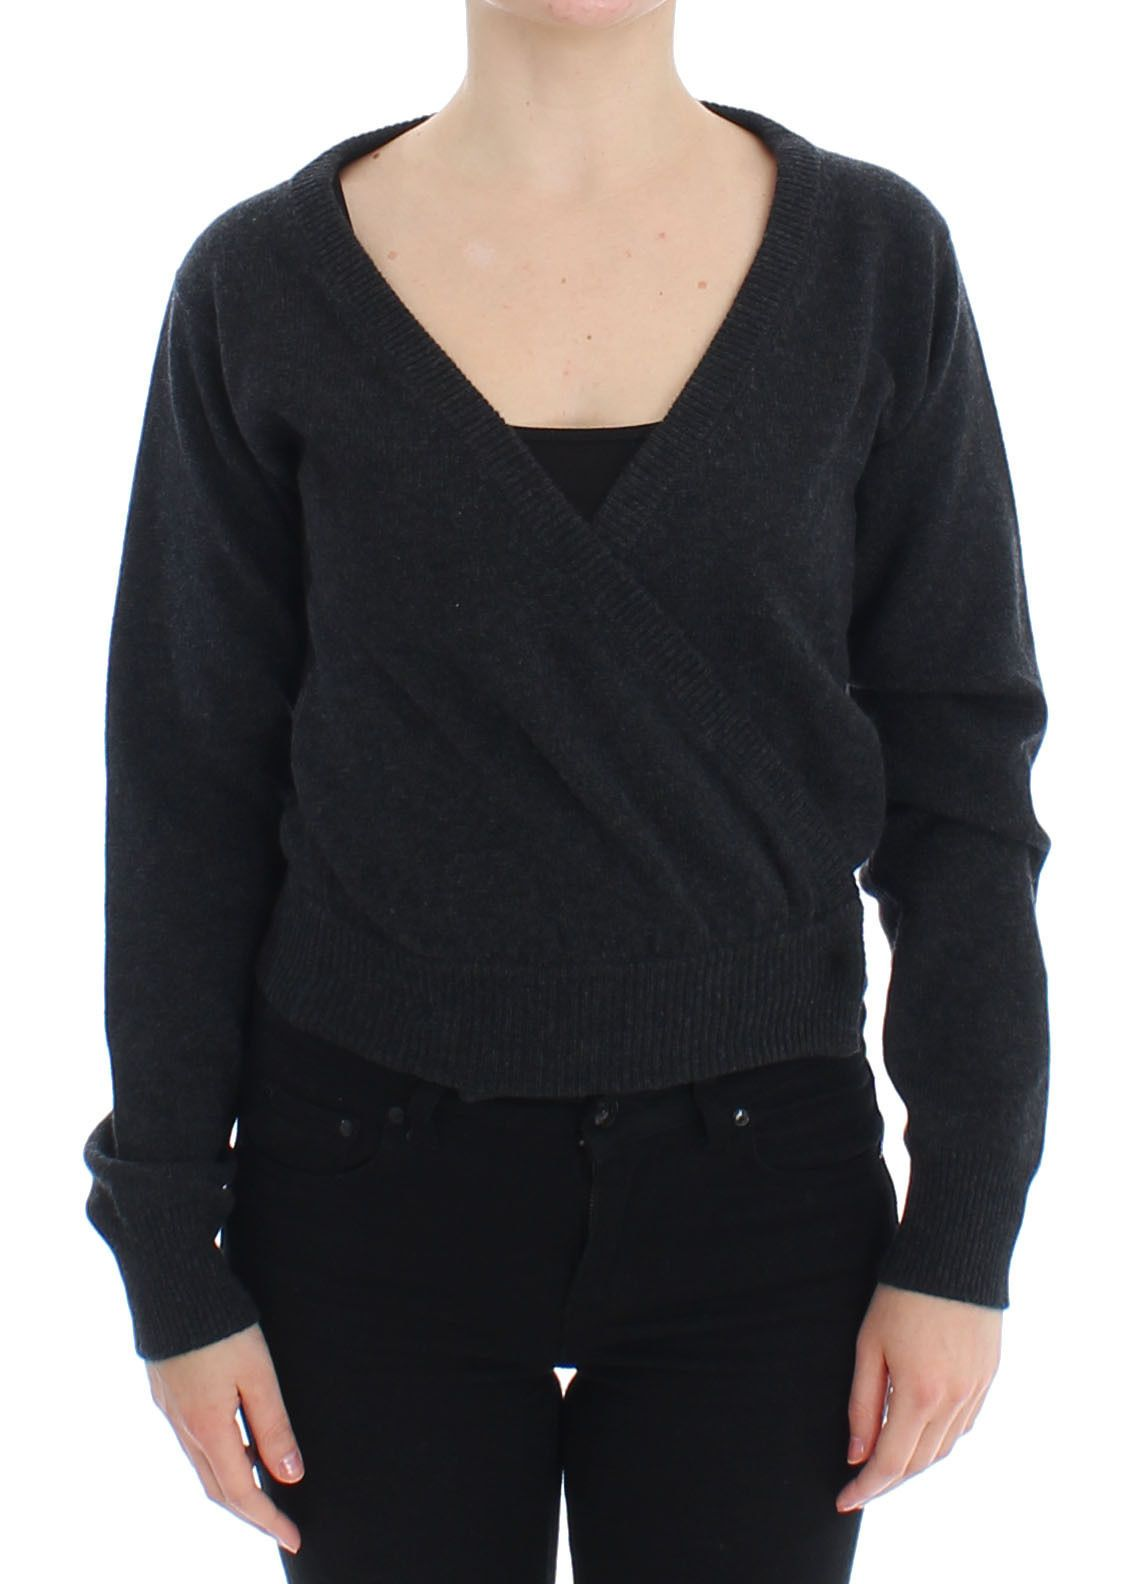 Dolce & Gabbana Women's Cashmere Sweater Pullover Wrap Gray SIG13347 - IT40|S